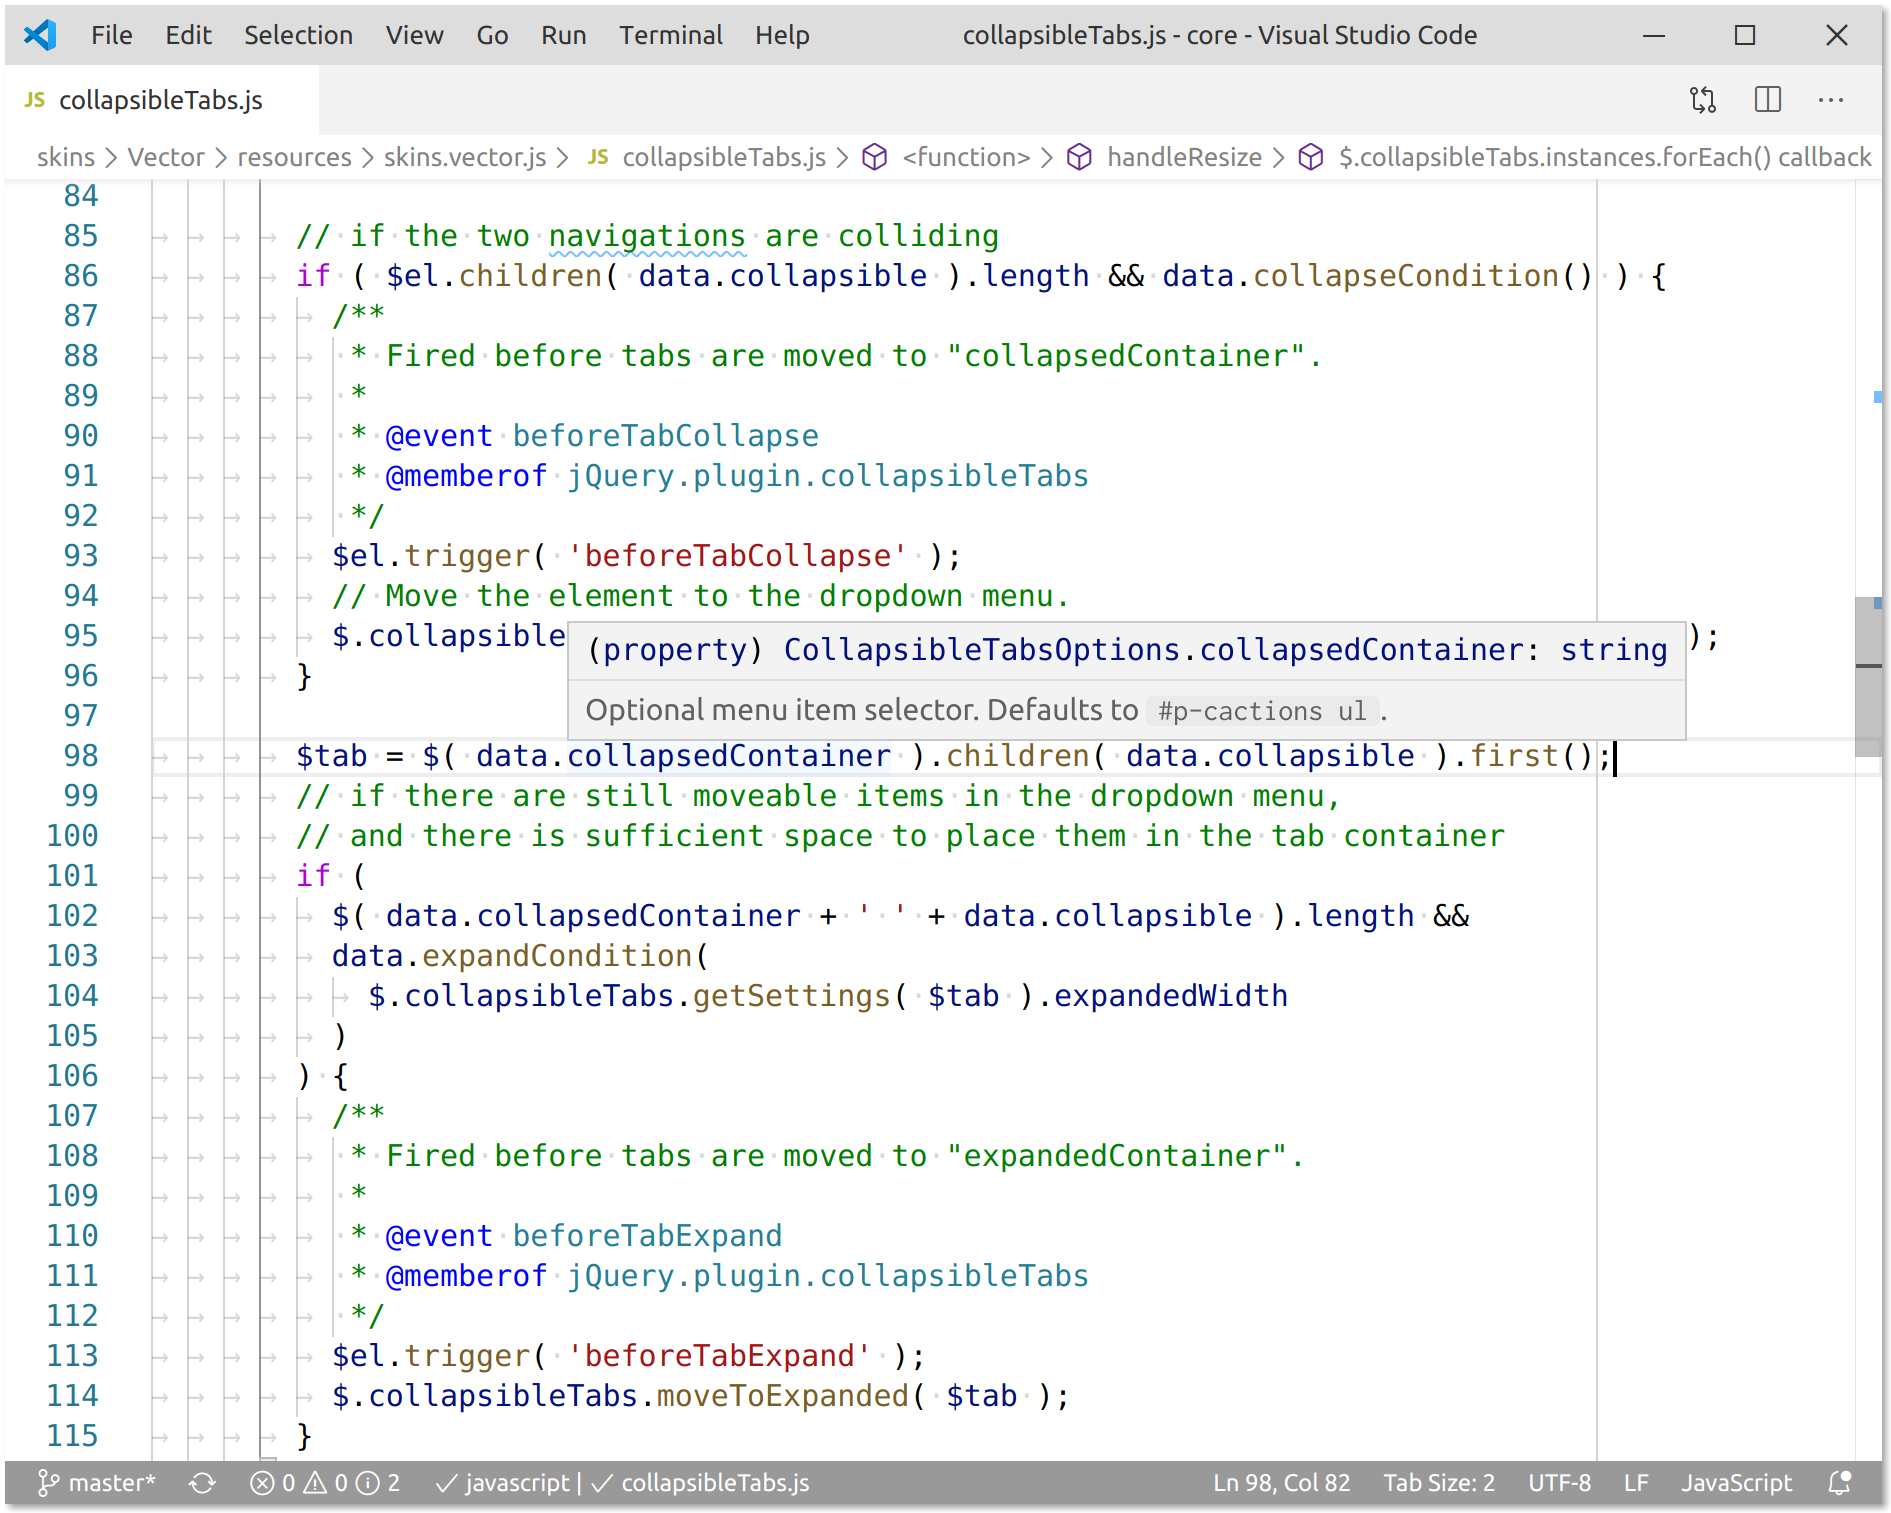 Screenshot of the same code editor presenting documentation in a highly integrated and useful manner.